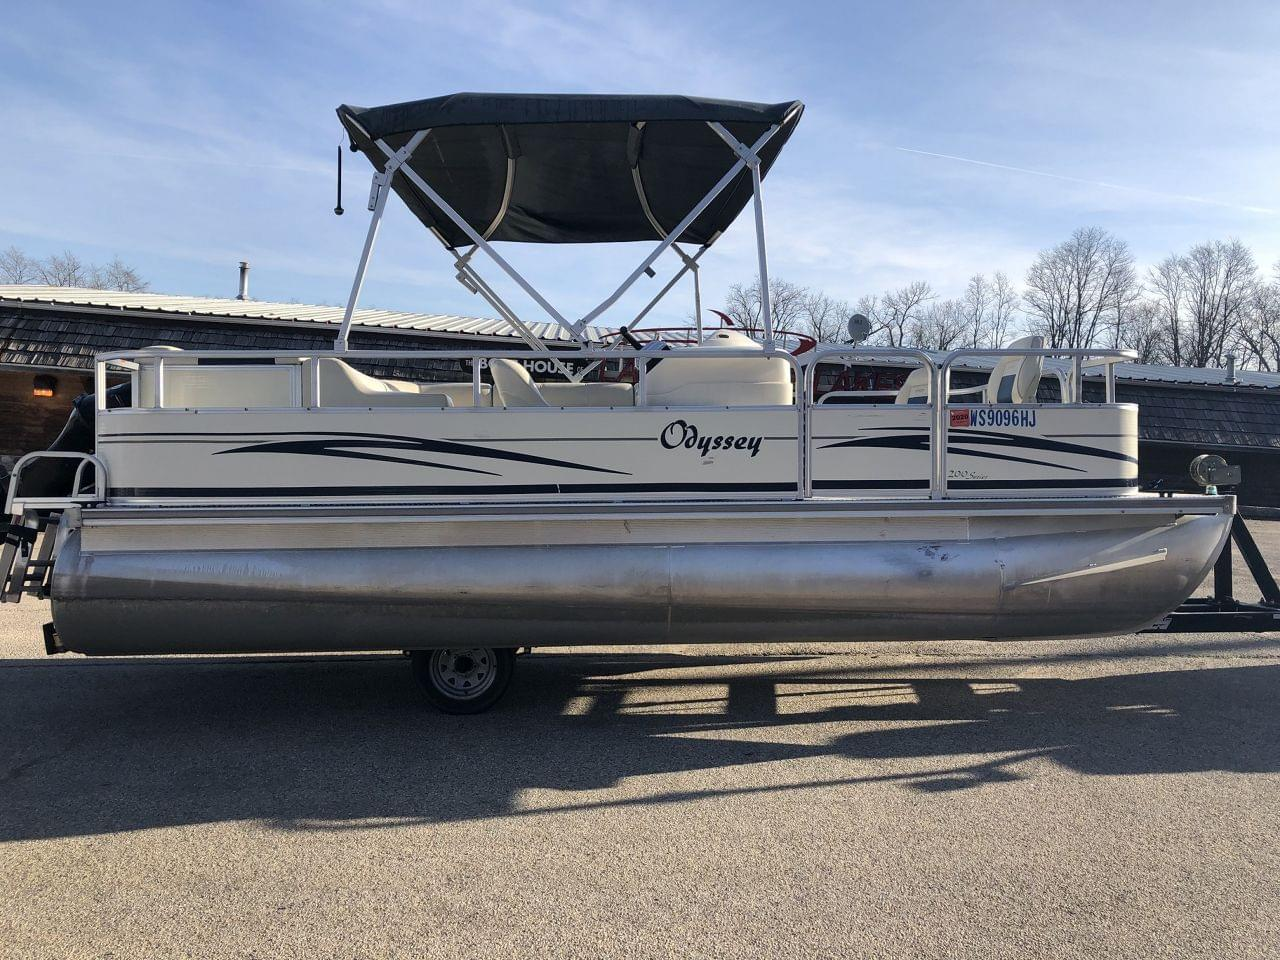 Odyssey boats for sale - Boat Trader